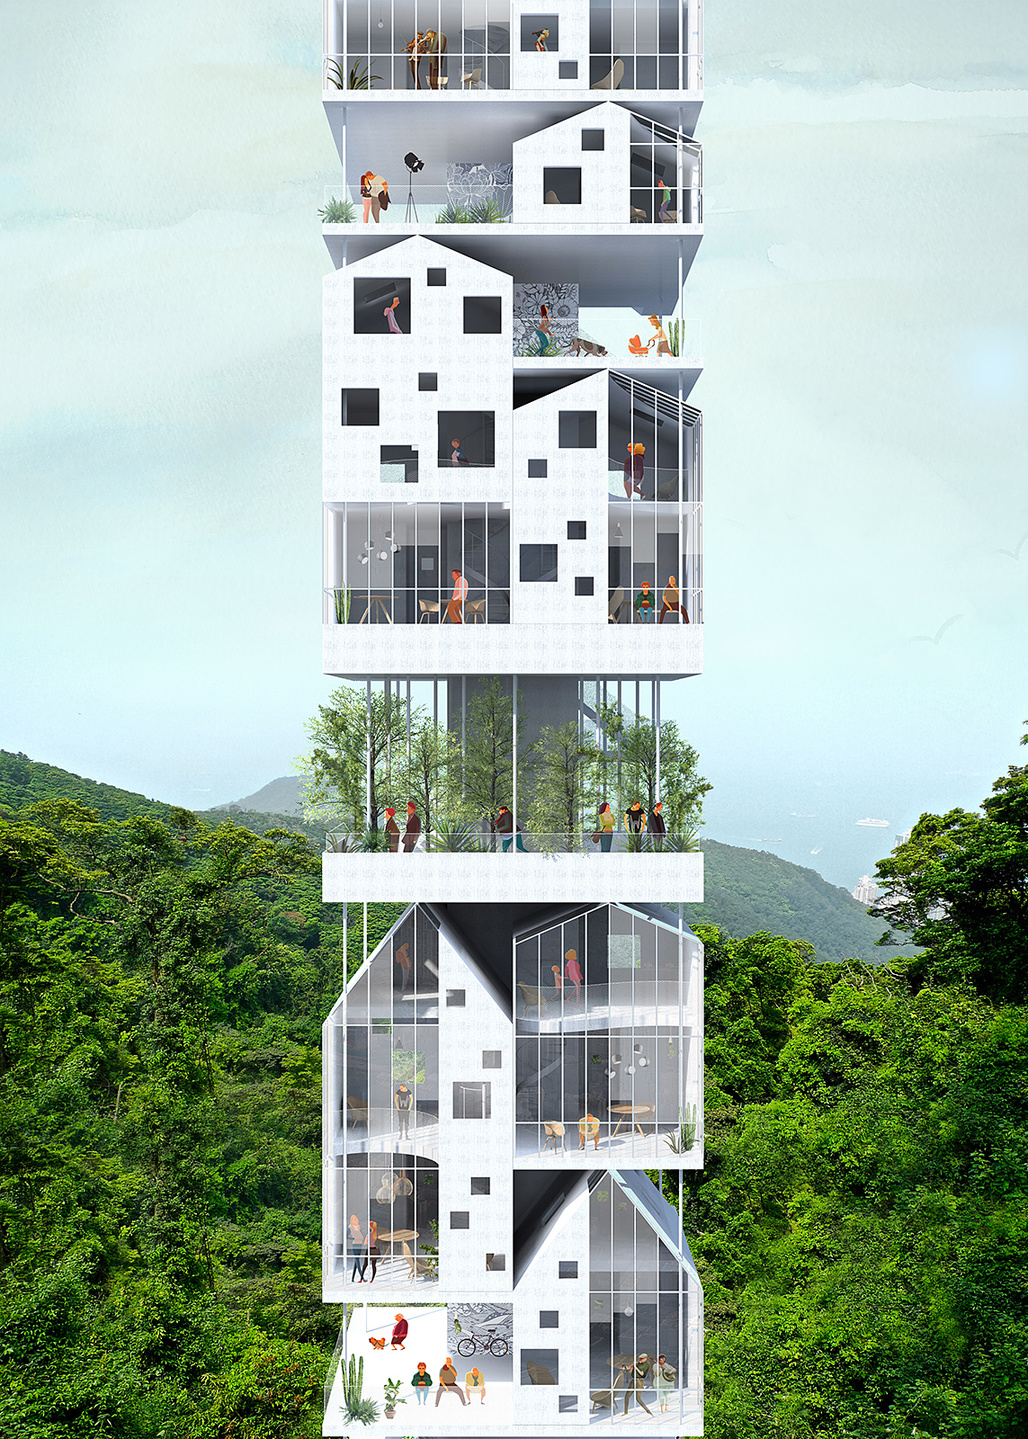 2nd prize: Vertical Village. Project authors: François Chantier, Maria Fernandez | France​